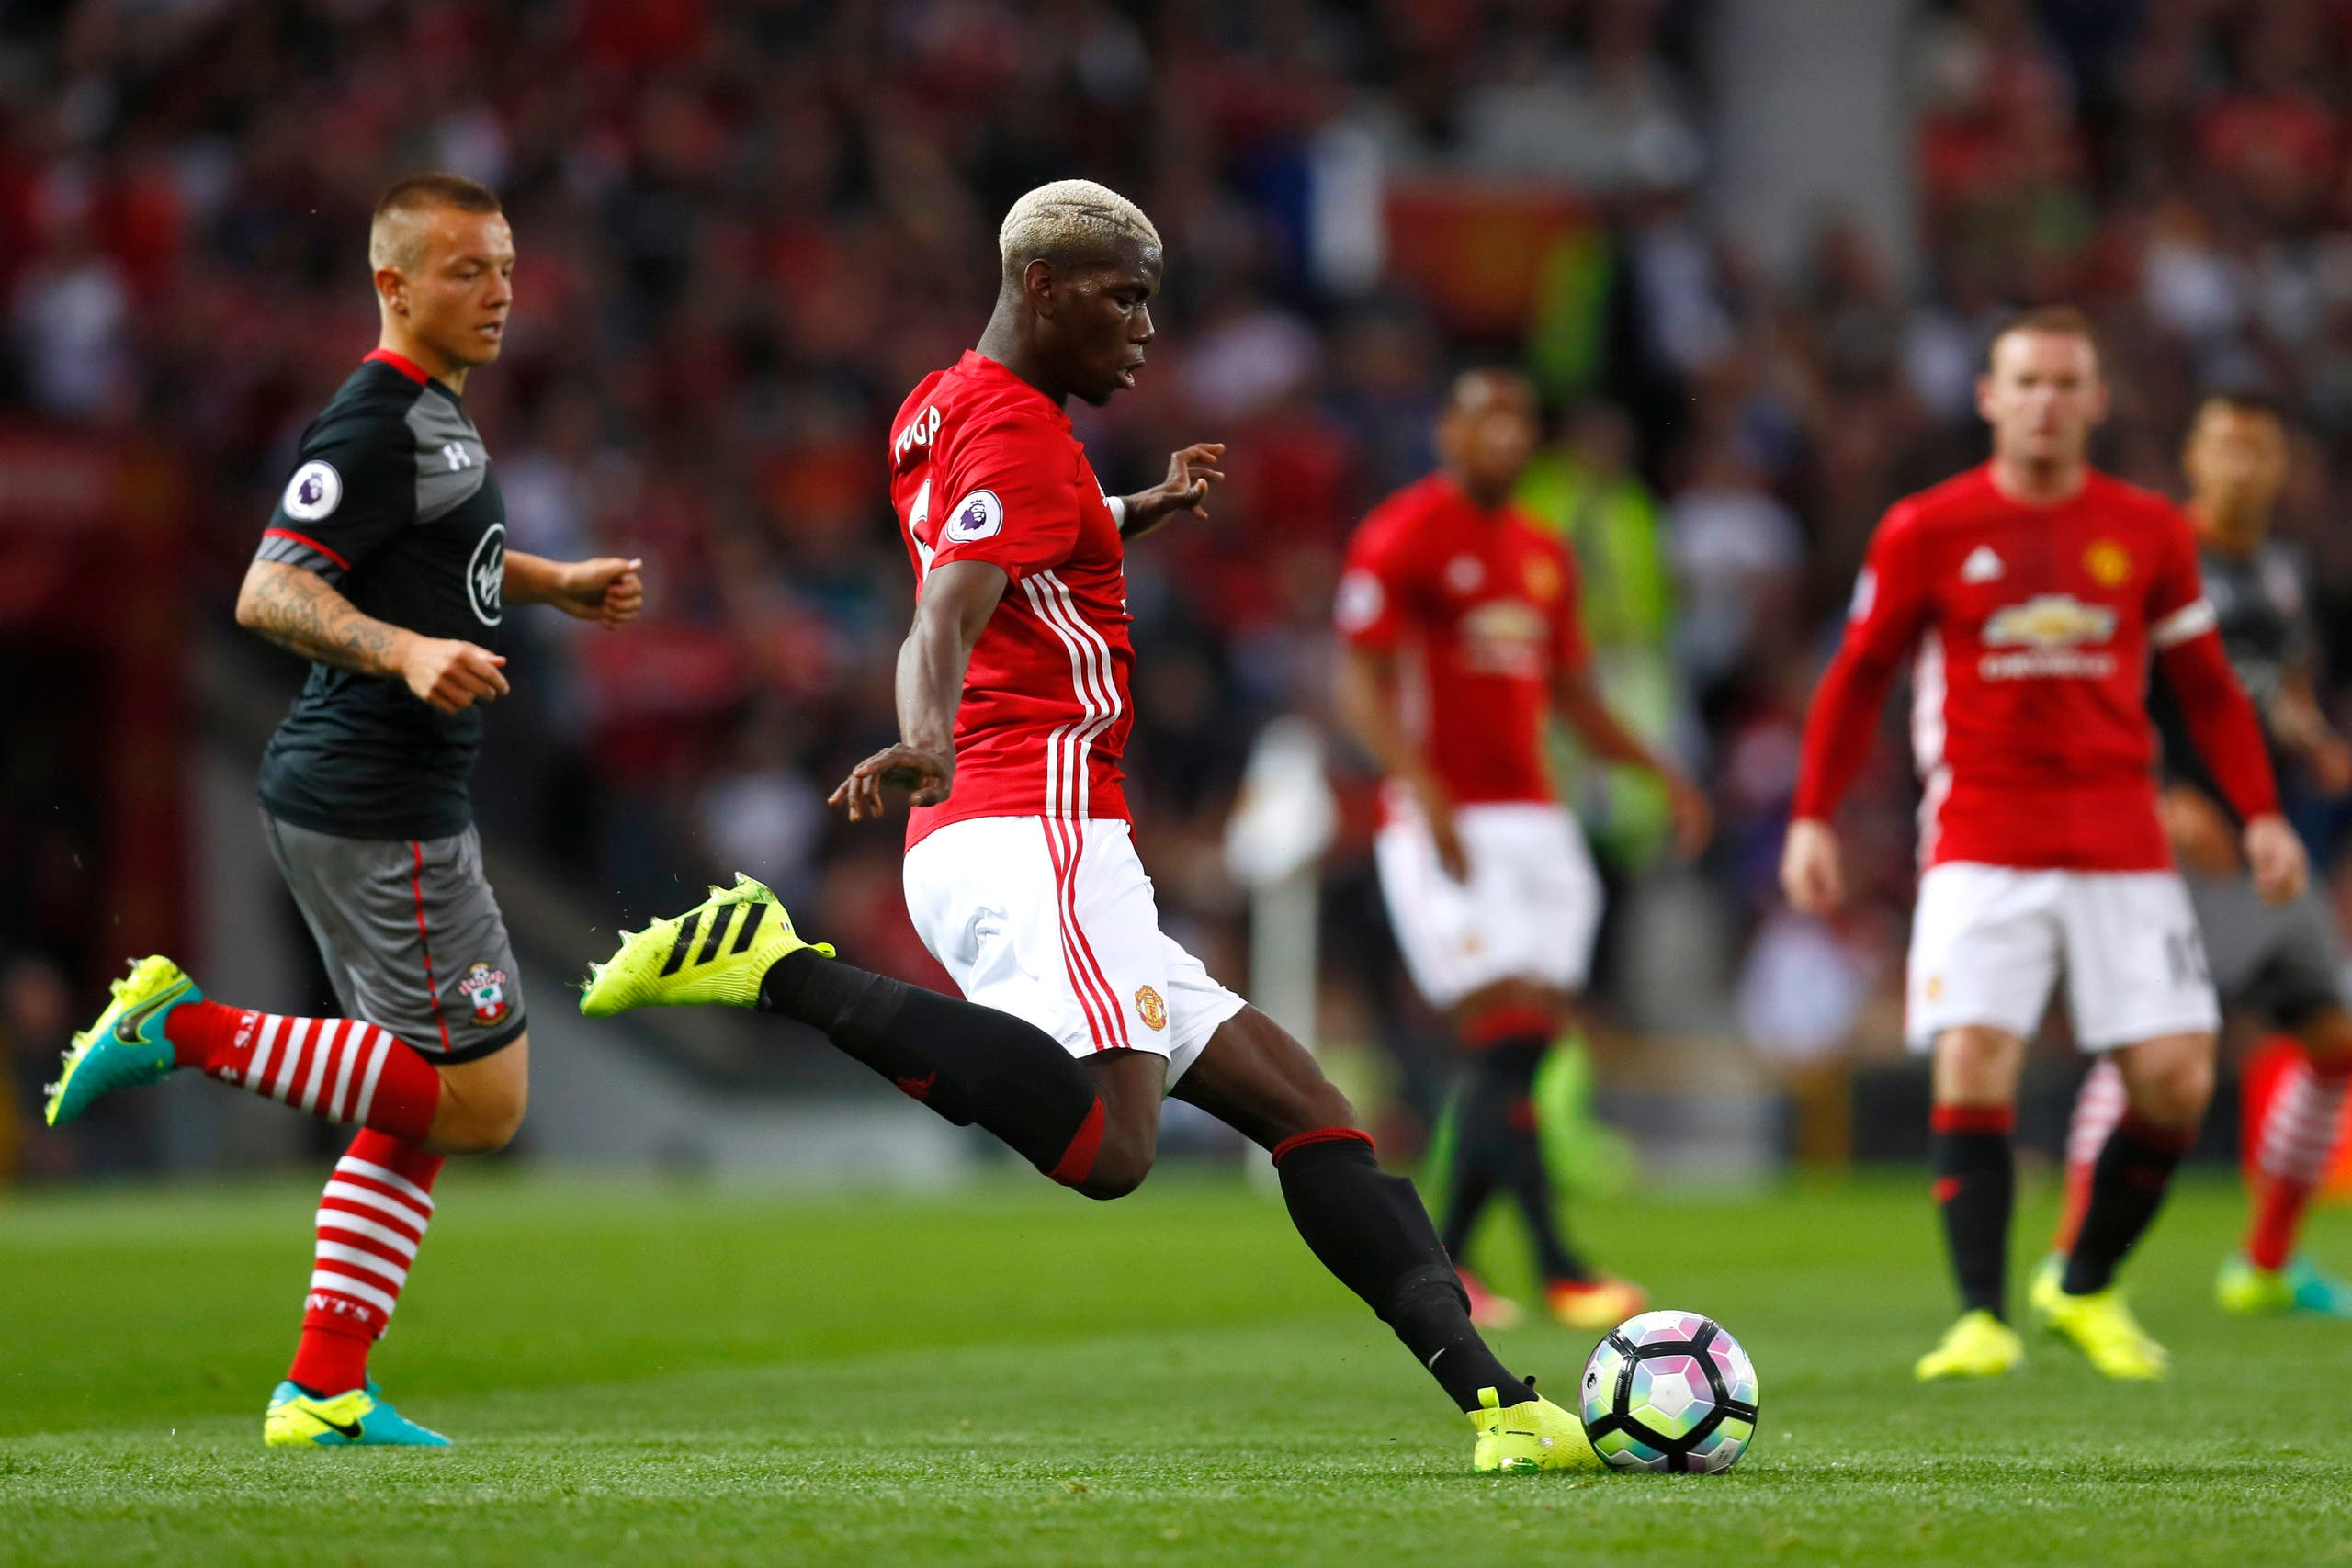 Manchester United's Paul Pogba in action Action Images via Reuters